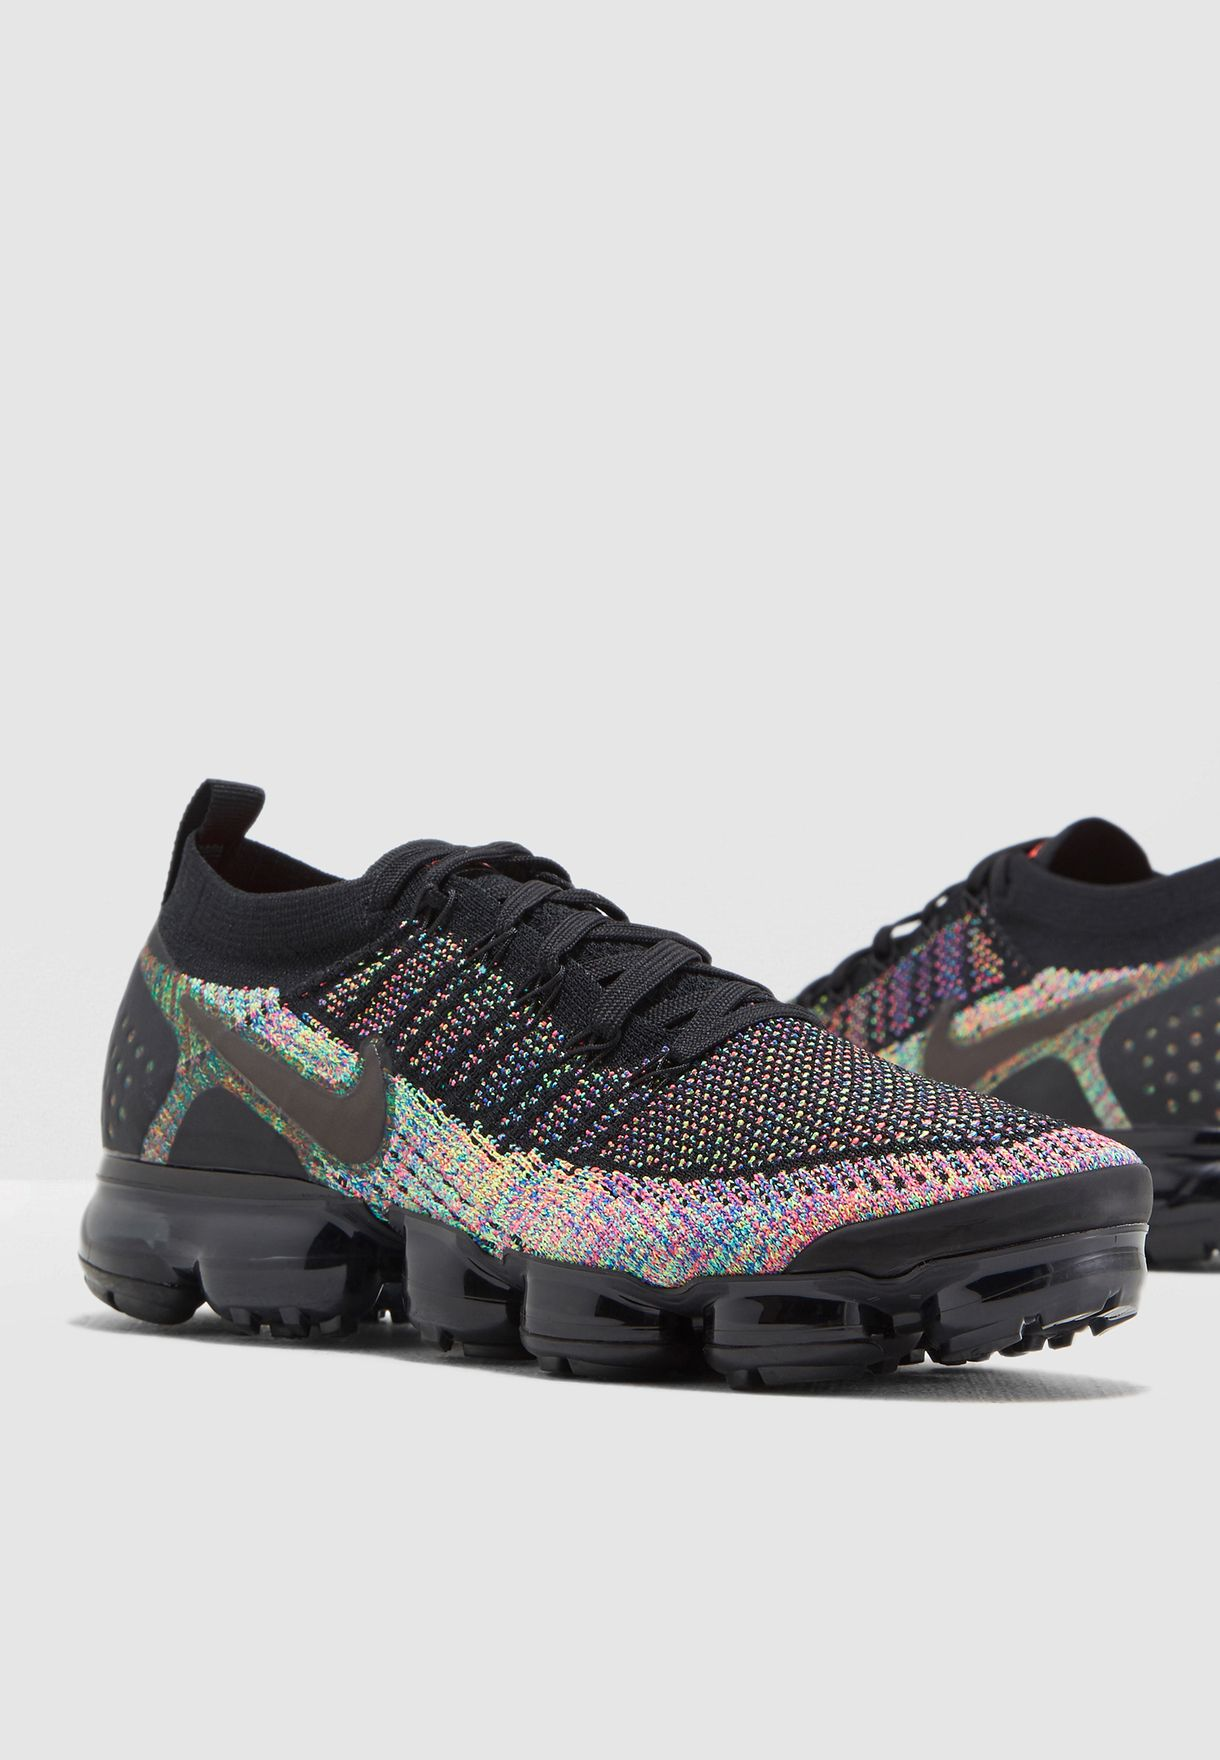 4cbf8b9e4ab1 Shop Nike multicolor Air Vapormax Flyknit 2 942842-017 for Men in ...